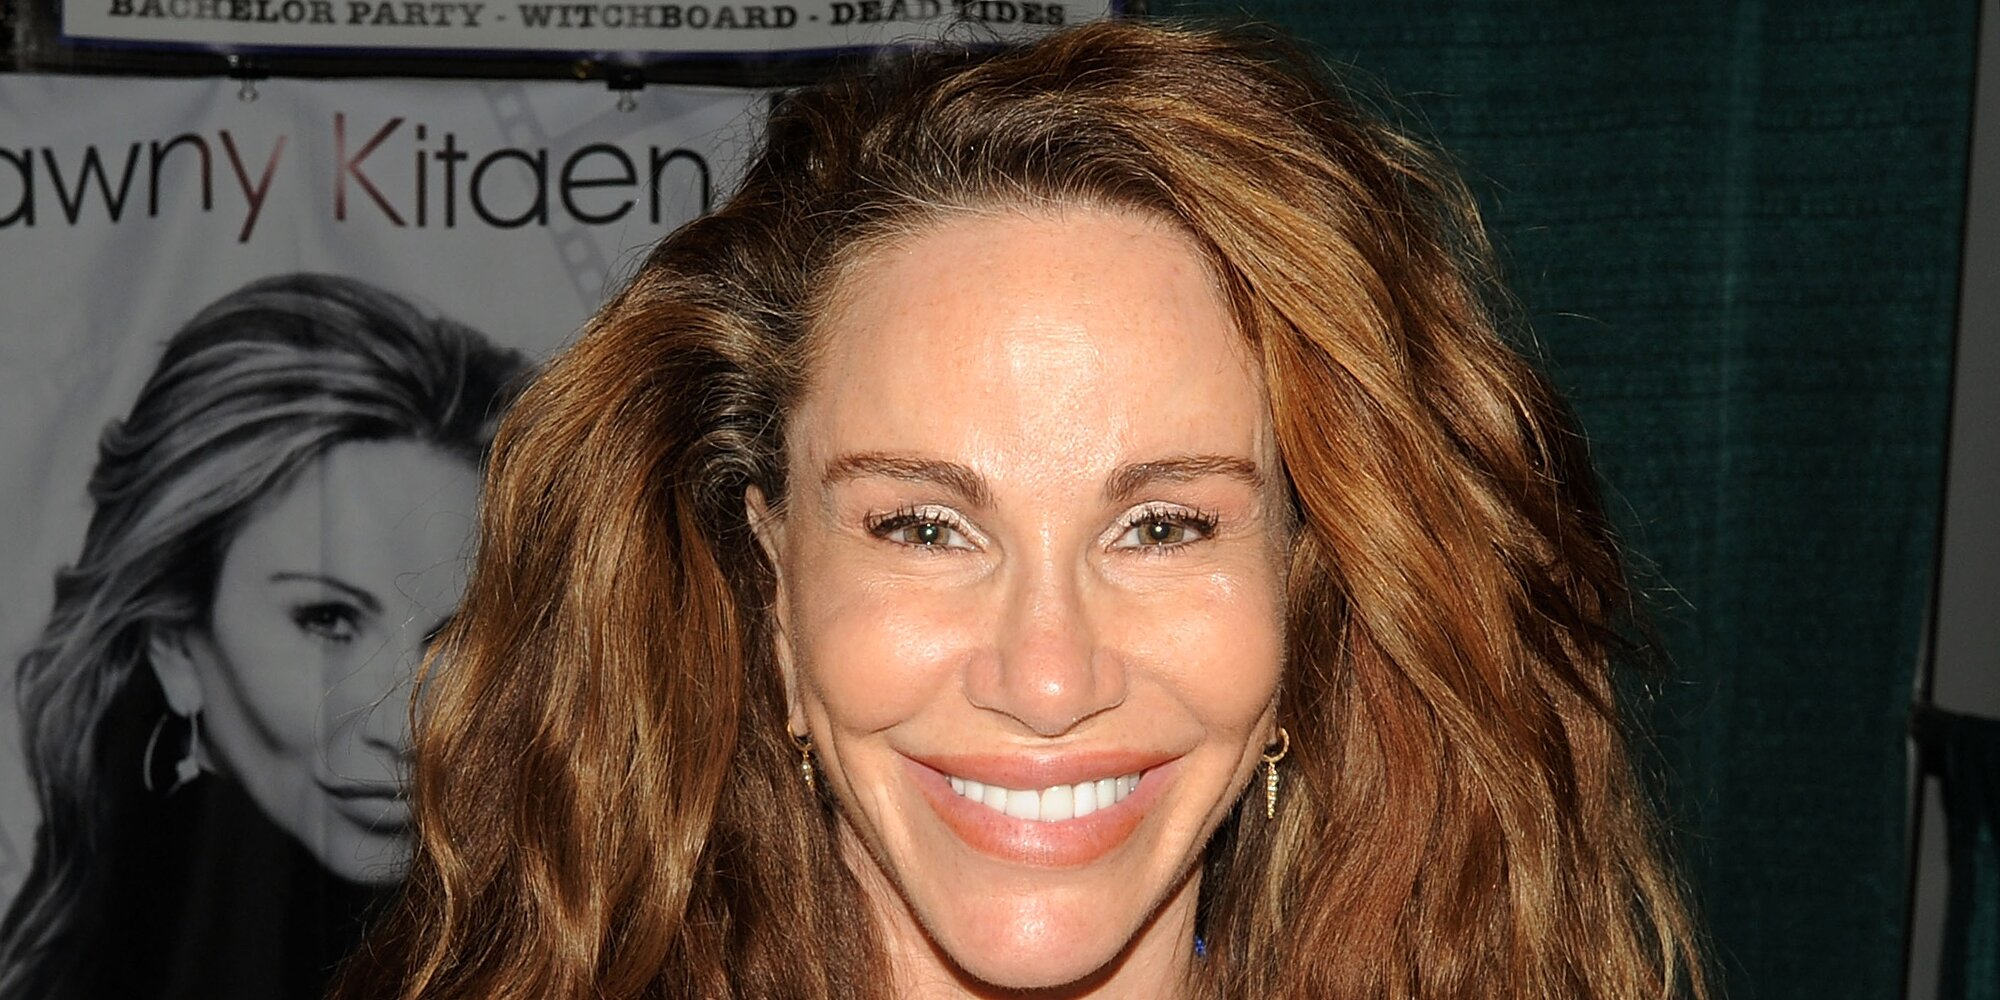 Tawny Kitaen, Actress and '80s Music Video Vixen, Dead at 59: 'RIP to a Legend'